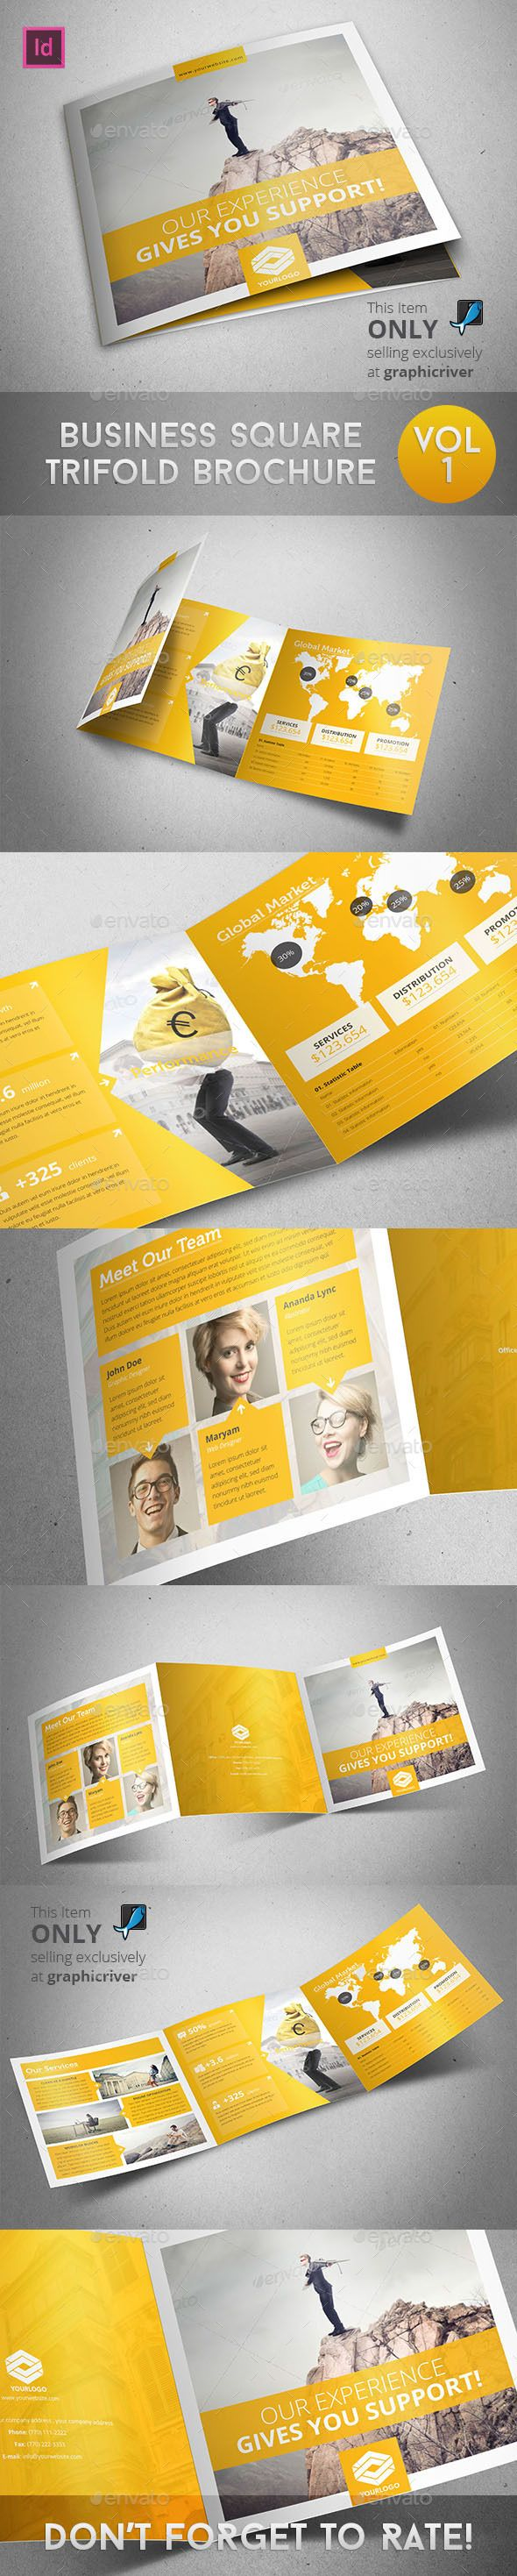 Business Square Trifold Brochure Template #design Download: http://graphicriver.net/item/business-square-trifold-brochure/9800512?ref=ksioks